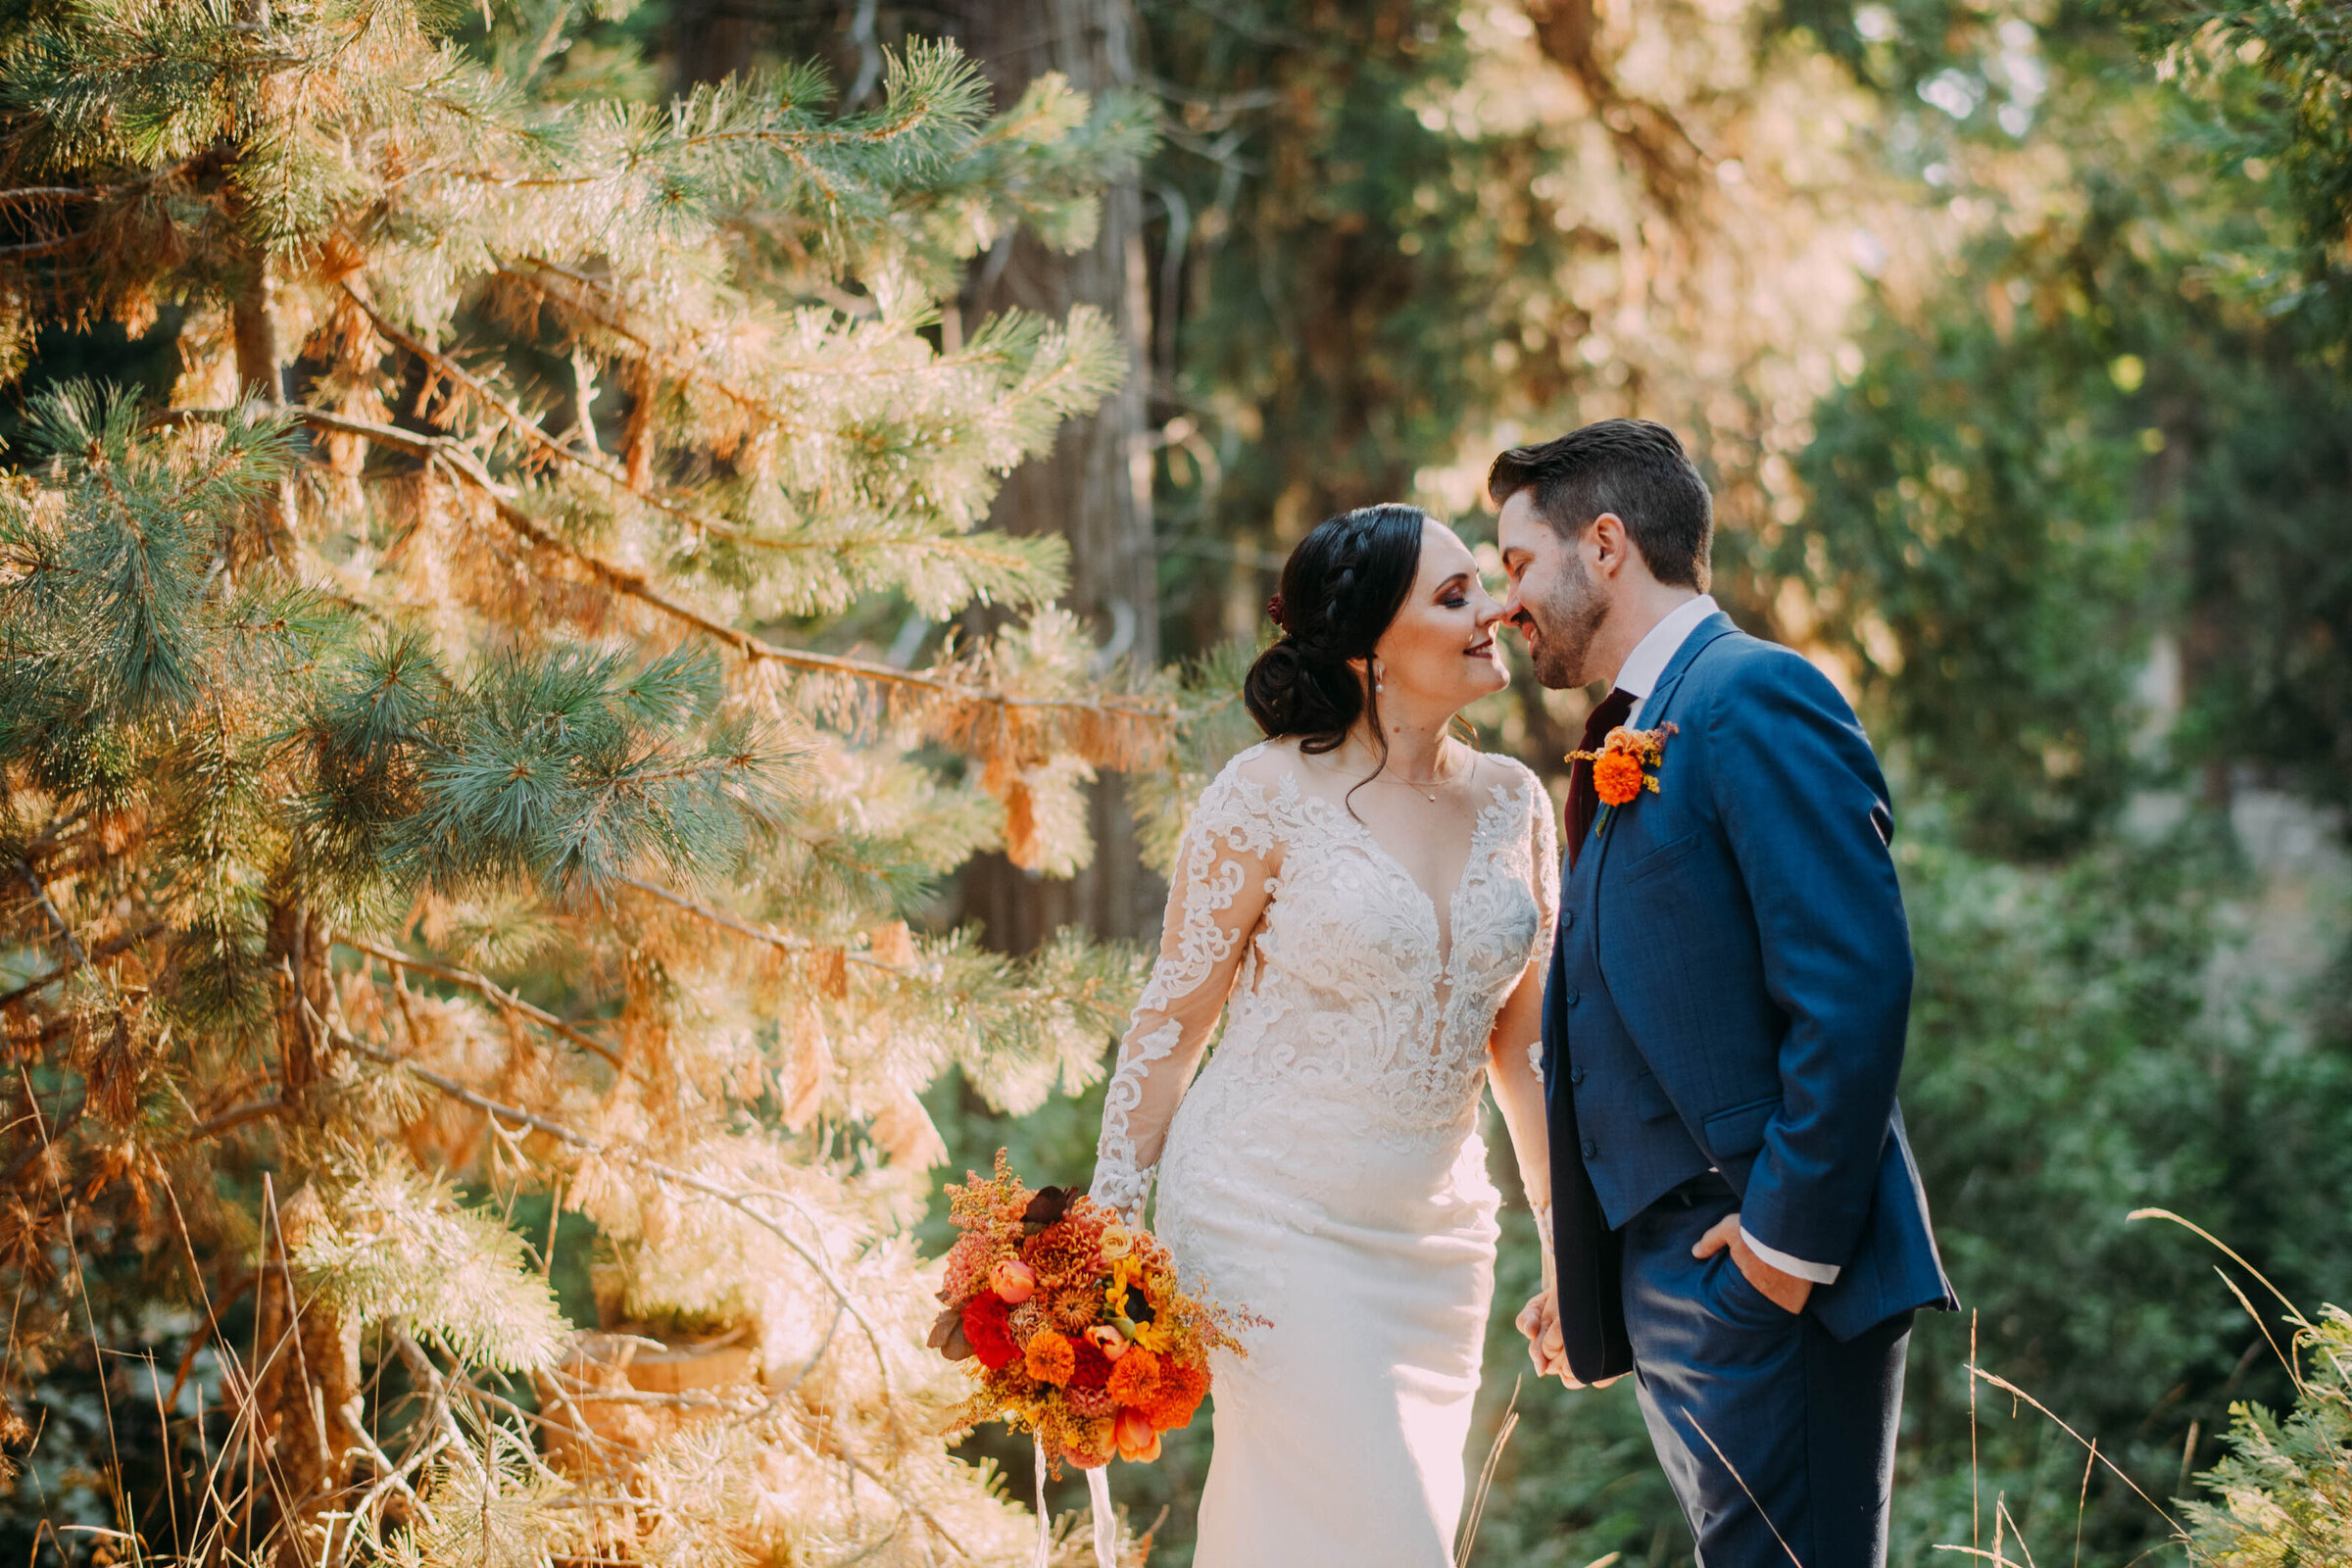 bride holding orange red and brown bouqet wearing white wedding dress leans in to kiss groom wearing blue tux and orange boutonnière in front of a pine tree shot by philadelphia wedding photographer alex medvick